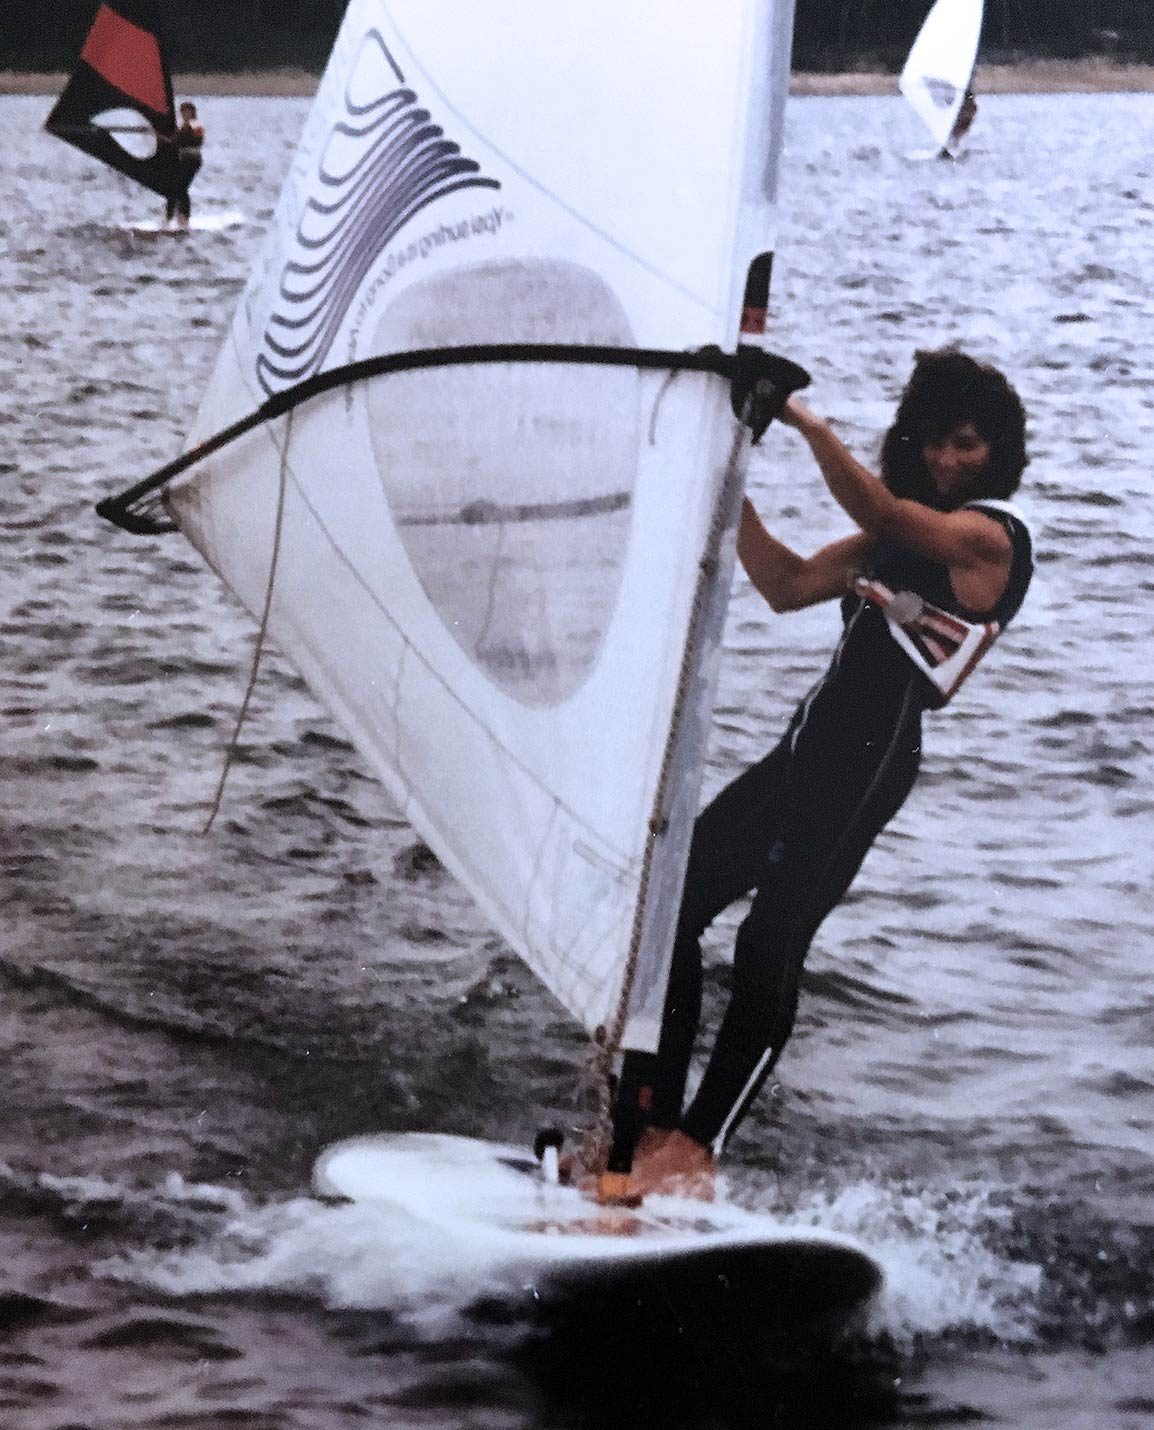 the owner windsurfing in 1982